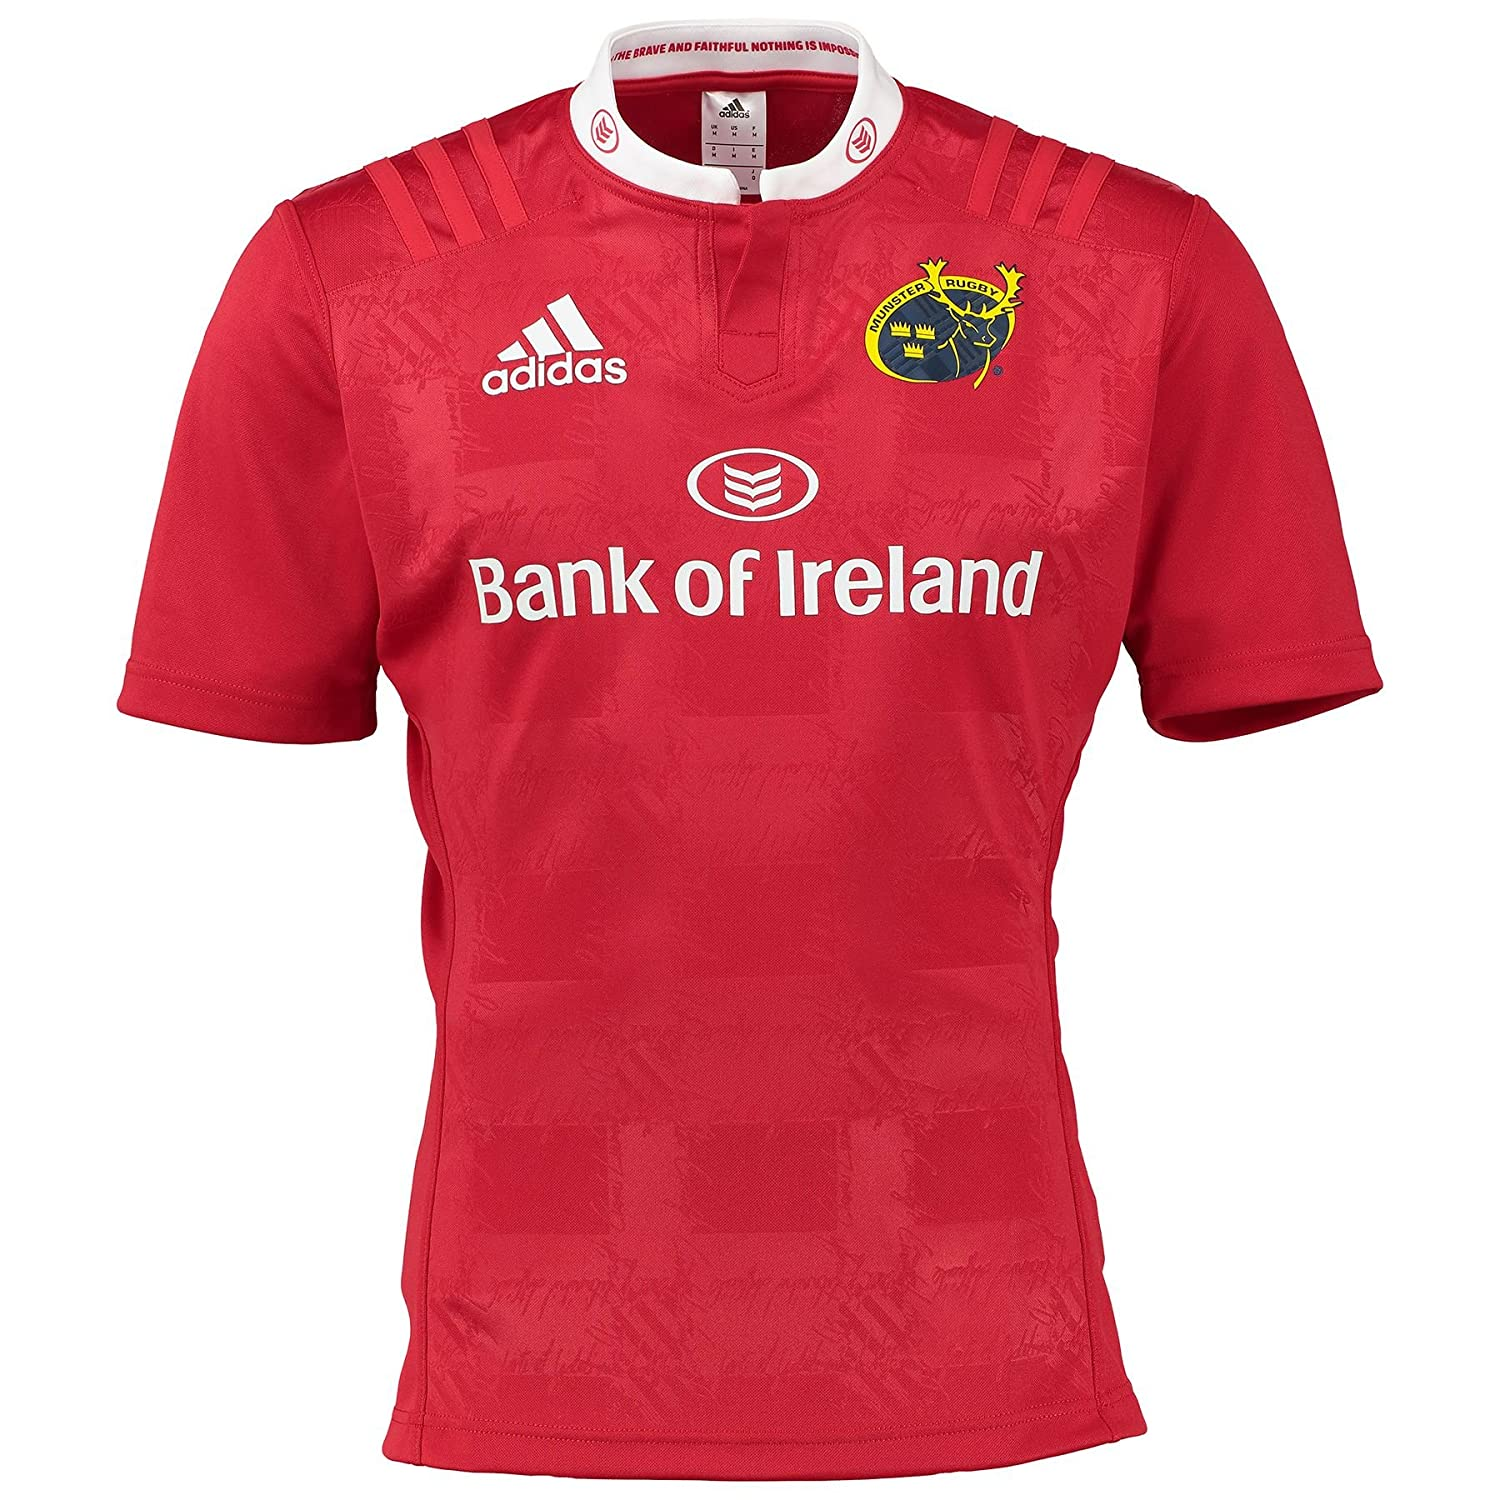 2015-2016 Munster Adidas Home Rugby Shirt: Amazon.es: Deportes y aire libre